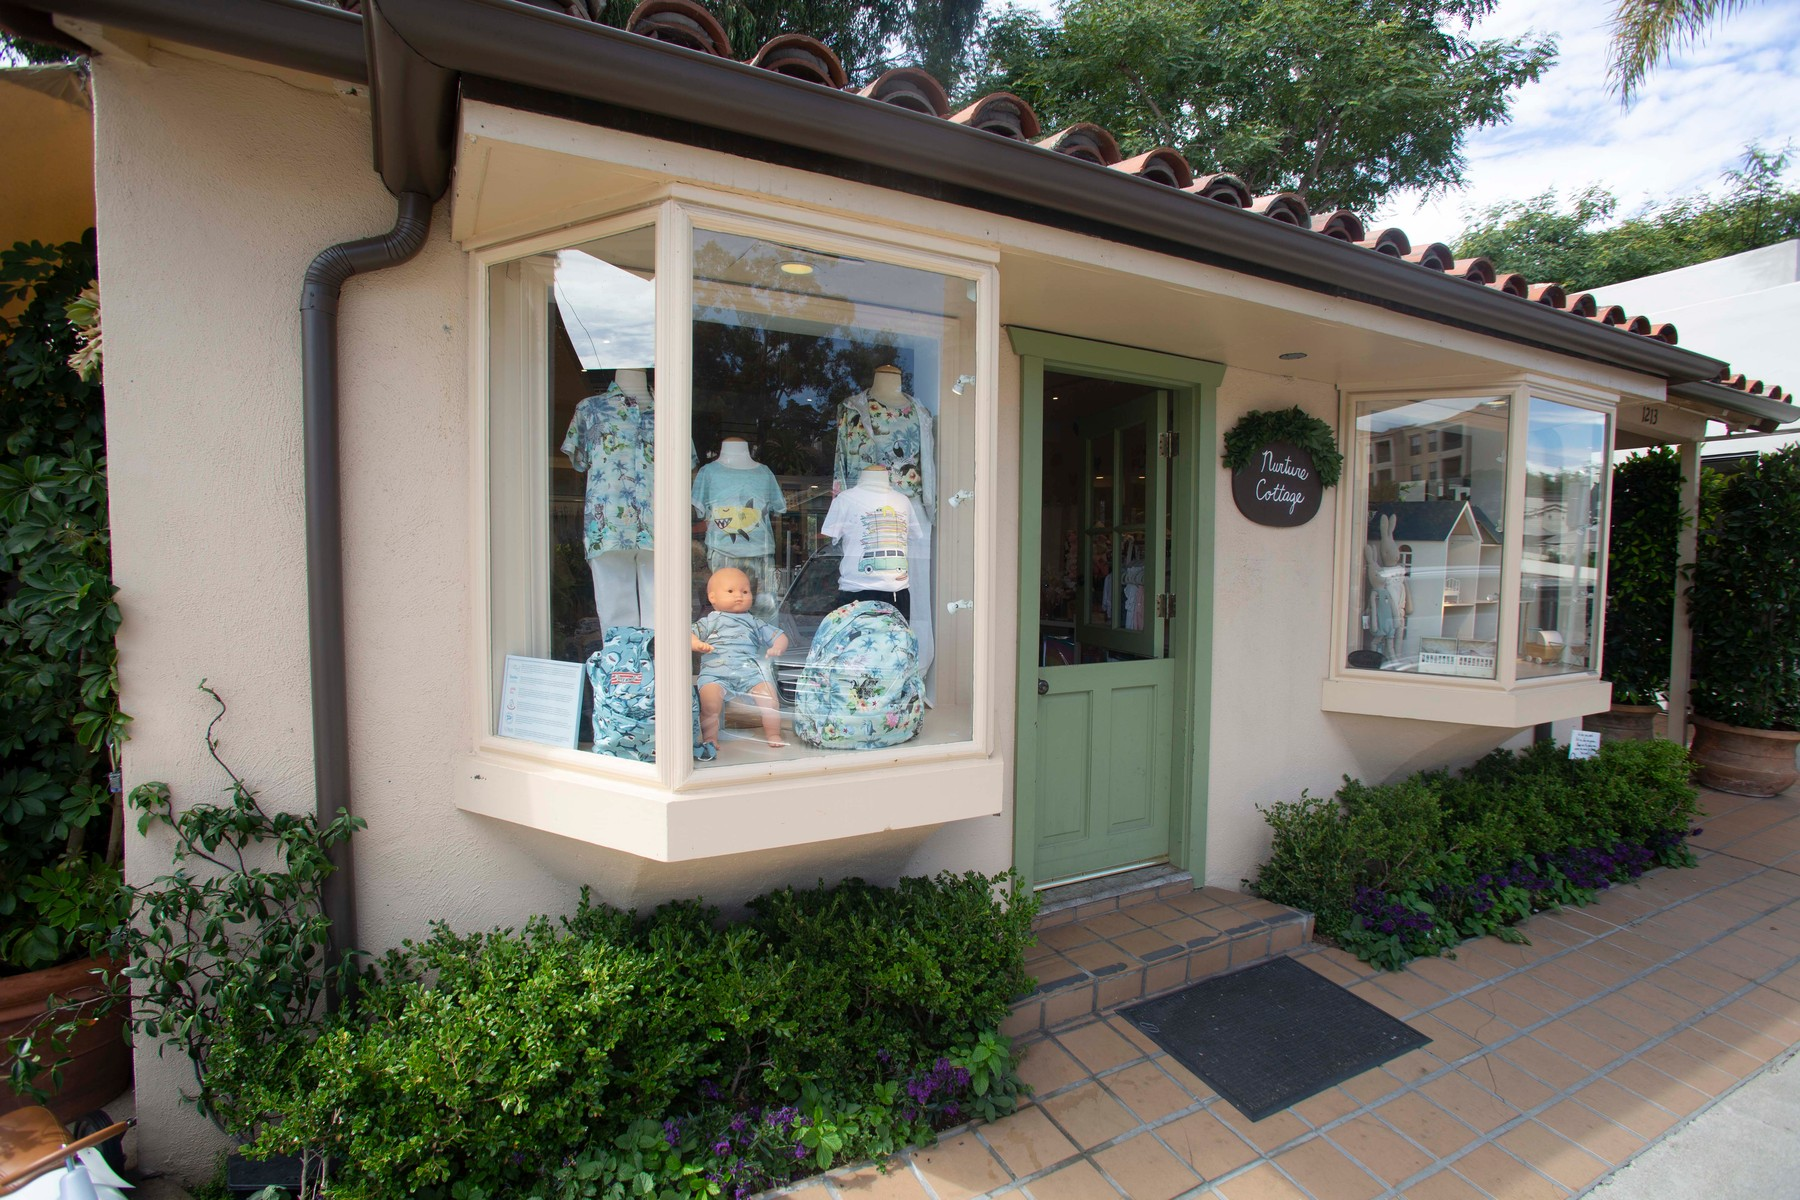 EXCLUSIVE: The Duke and Duchess of Sussex have bought a home Montecito CA. Here are some of the Local sights, restaurants, boutiques, toy shops, beaches, Polo Club and more!. 13 Aug 2020,Image: 552248853, License: Rights-managed, Restrictions: World Rights, Model Release: no, Credit line: MEGA / The Mega Agency / Profimedia